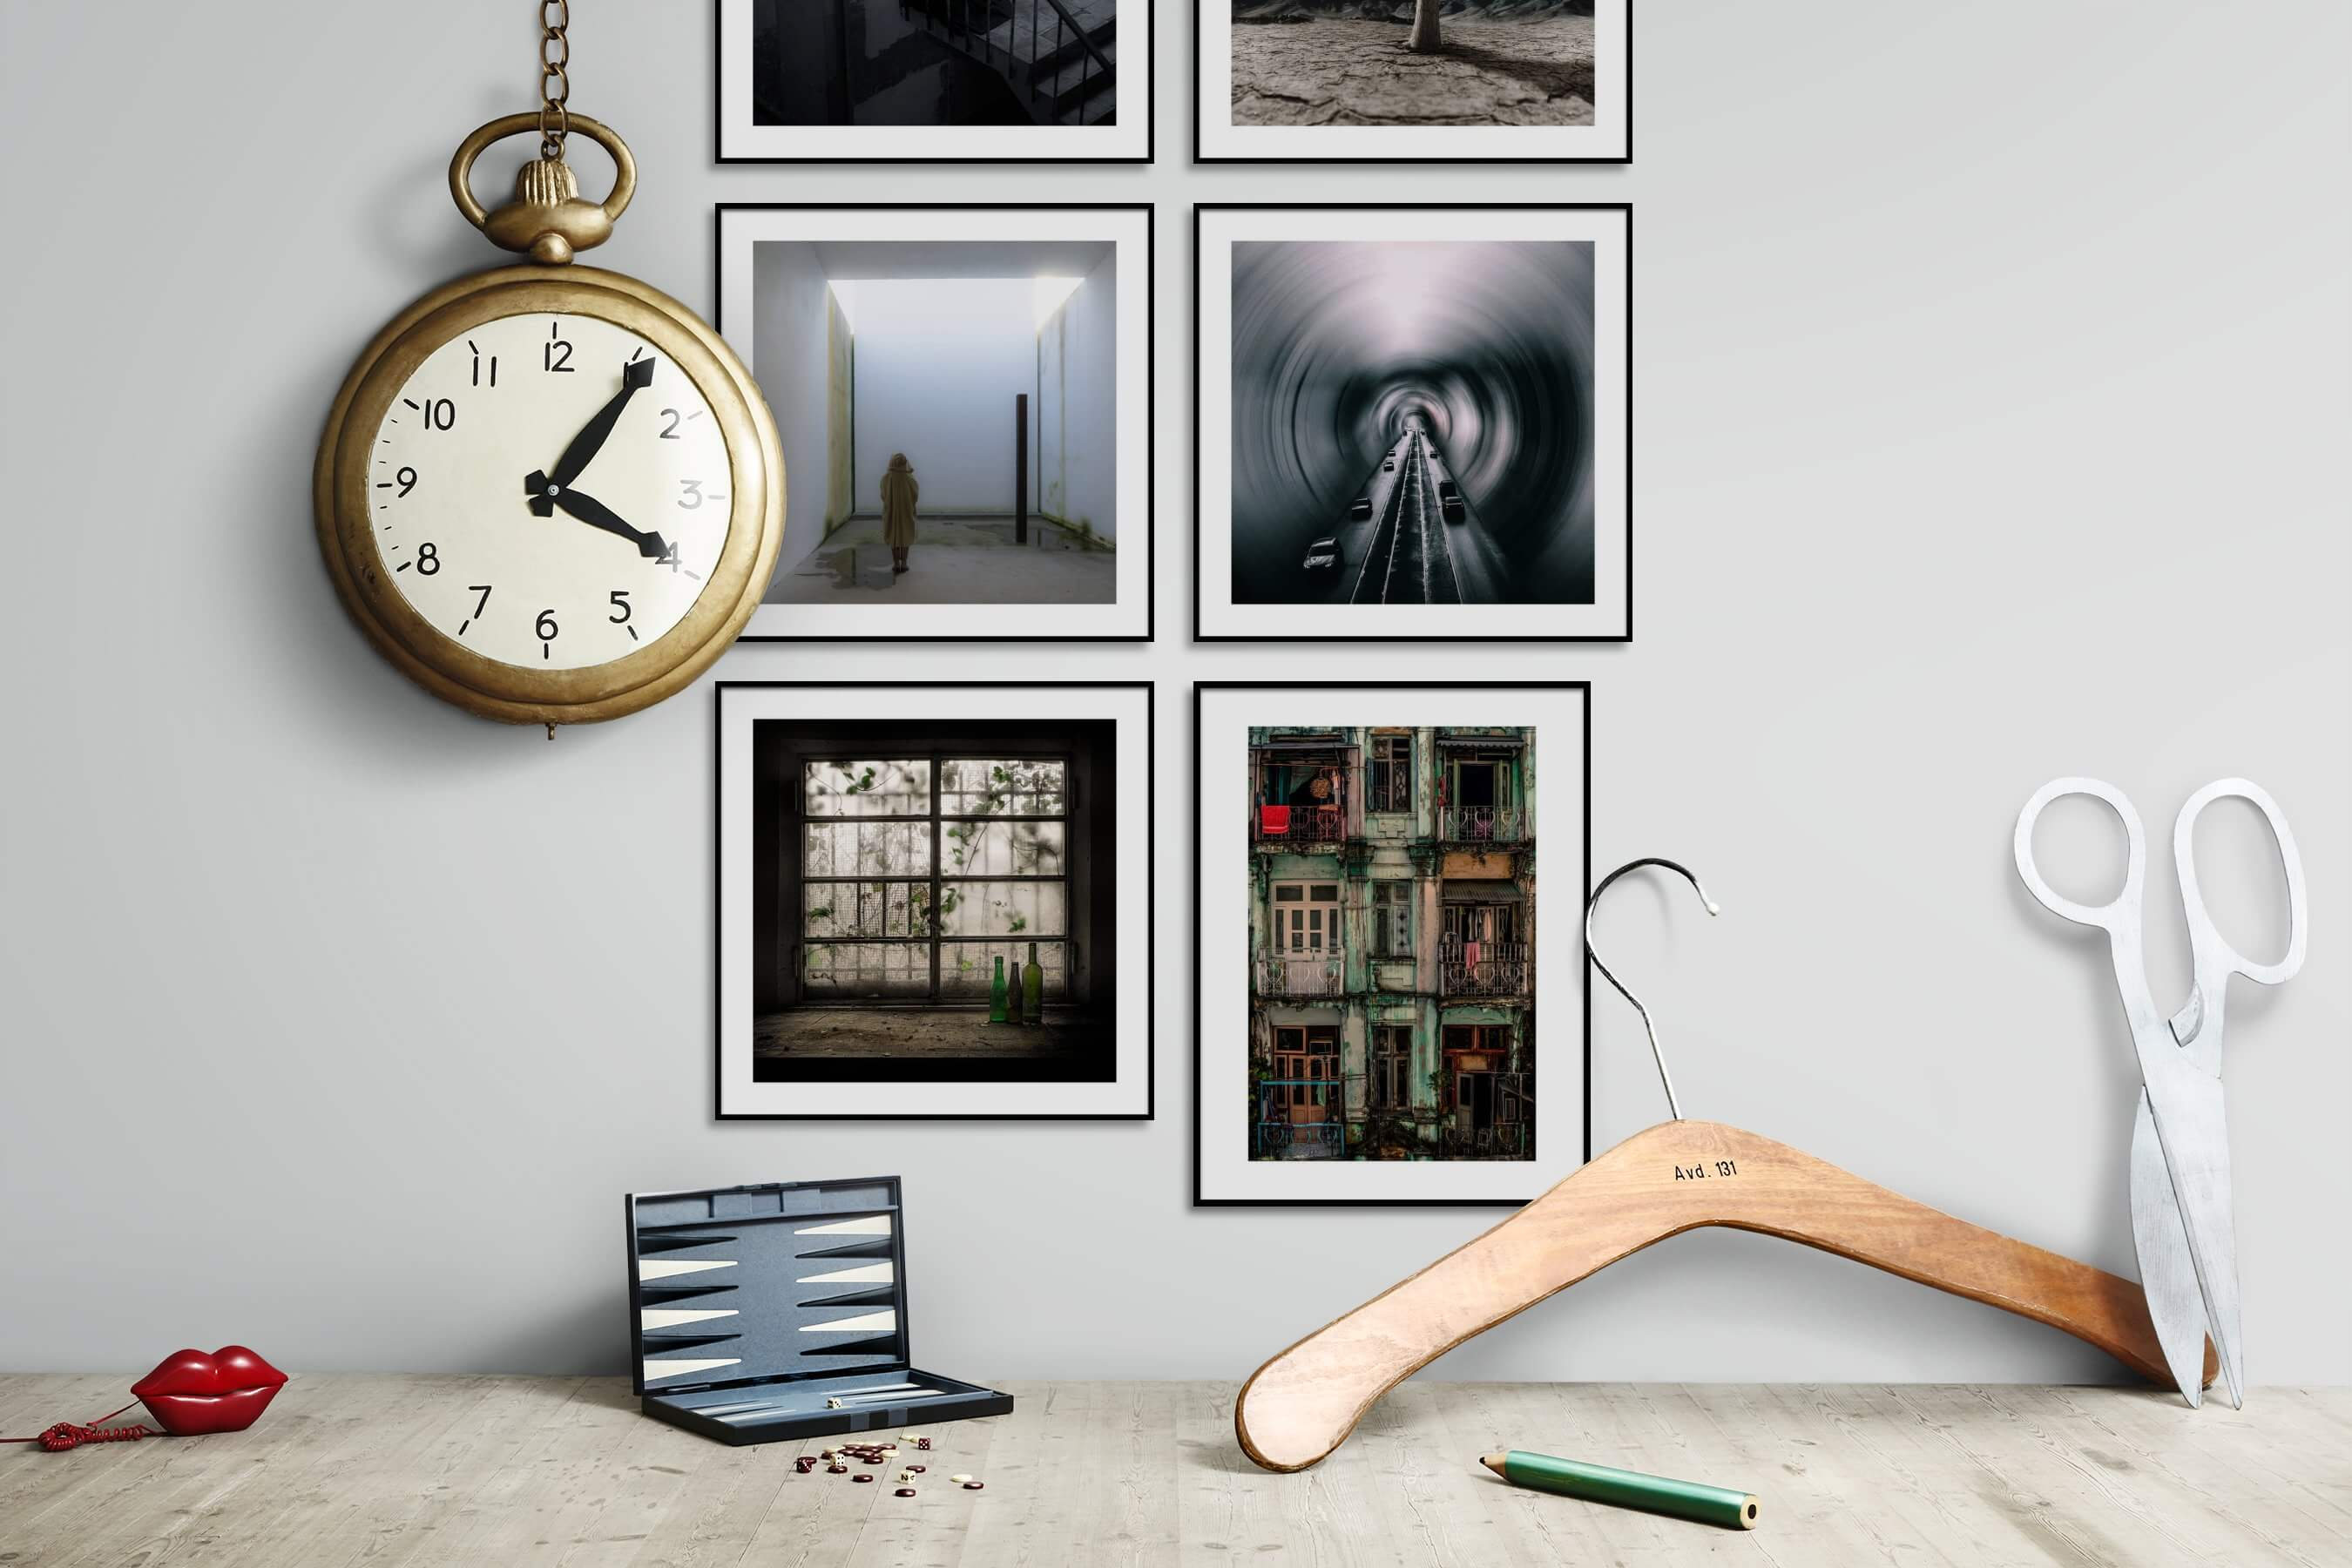 Gallery wall idea with six framed pictures arranged on a wall depicting Artsy, Black & White, For the Moderate, Vintage, and City Life